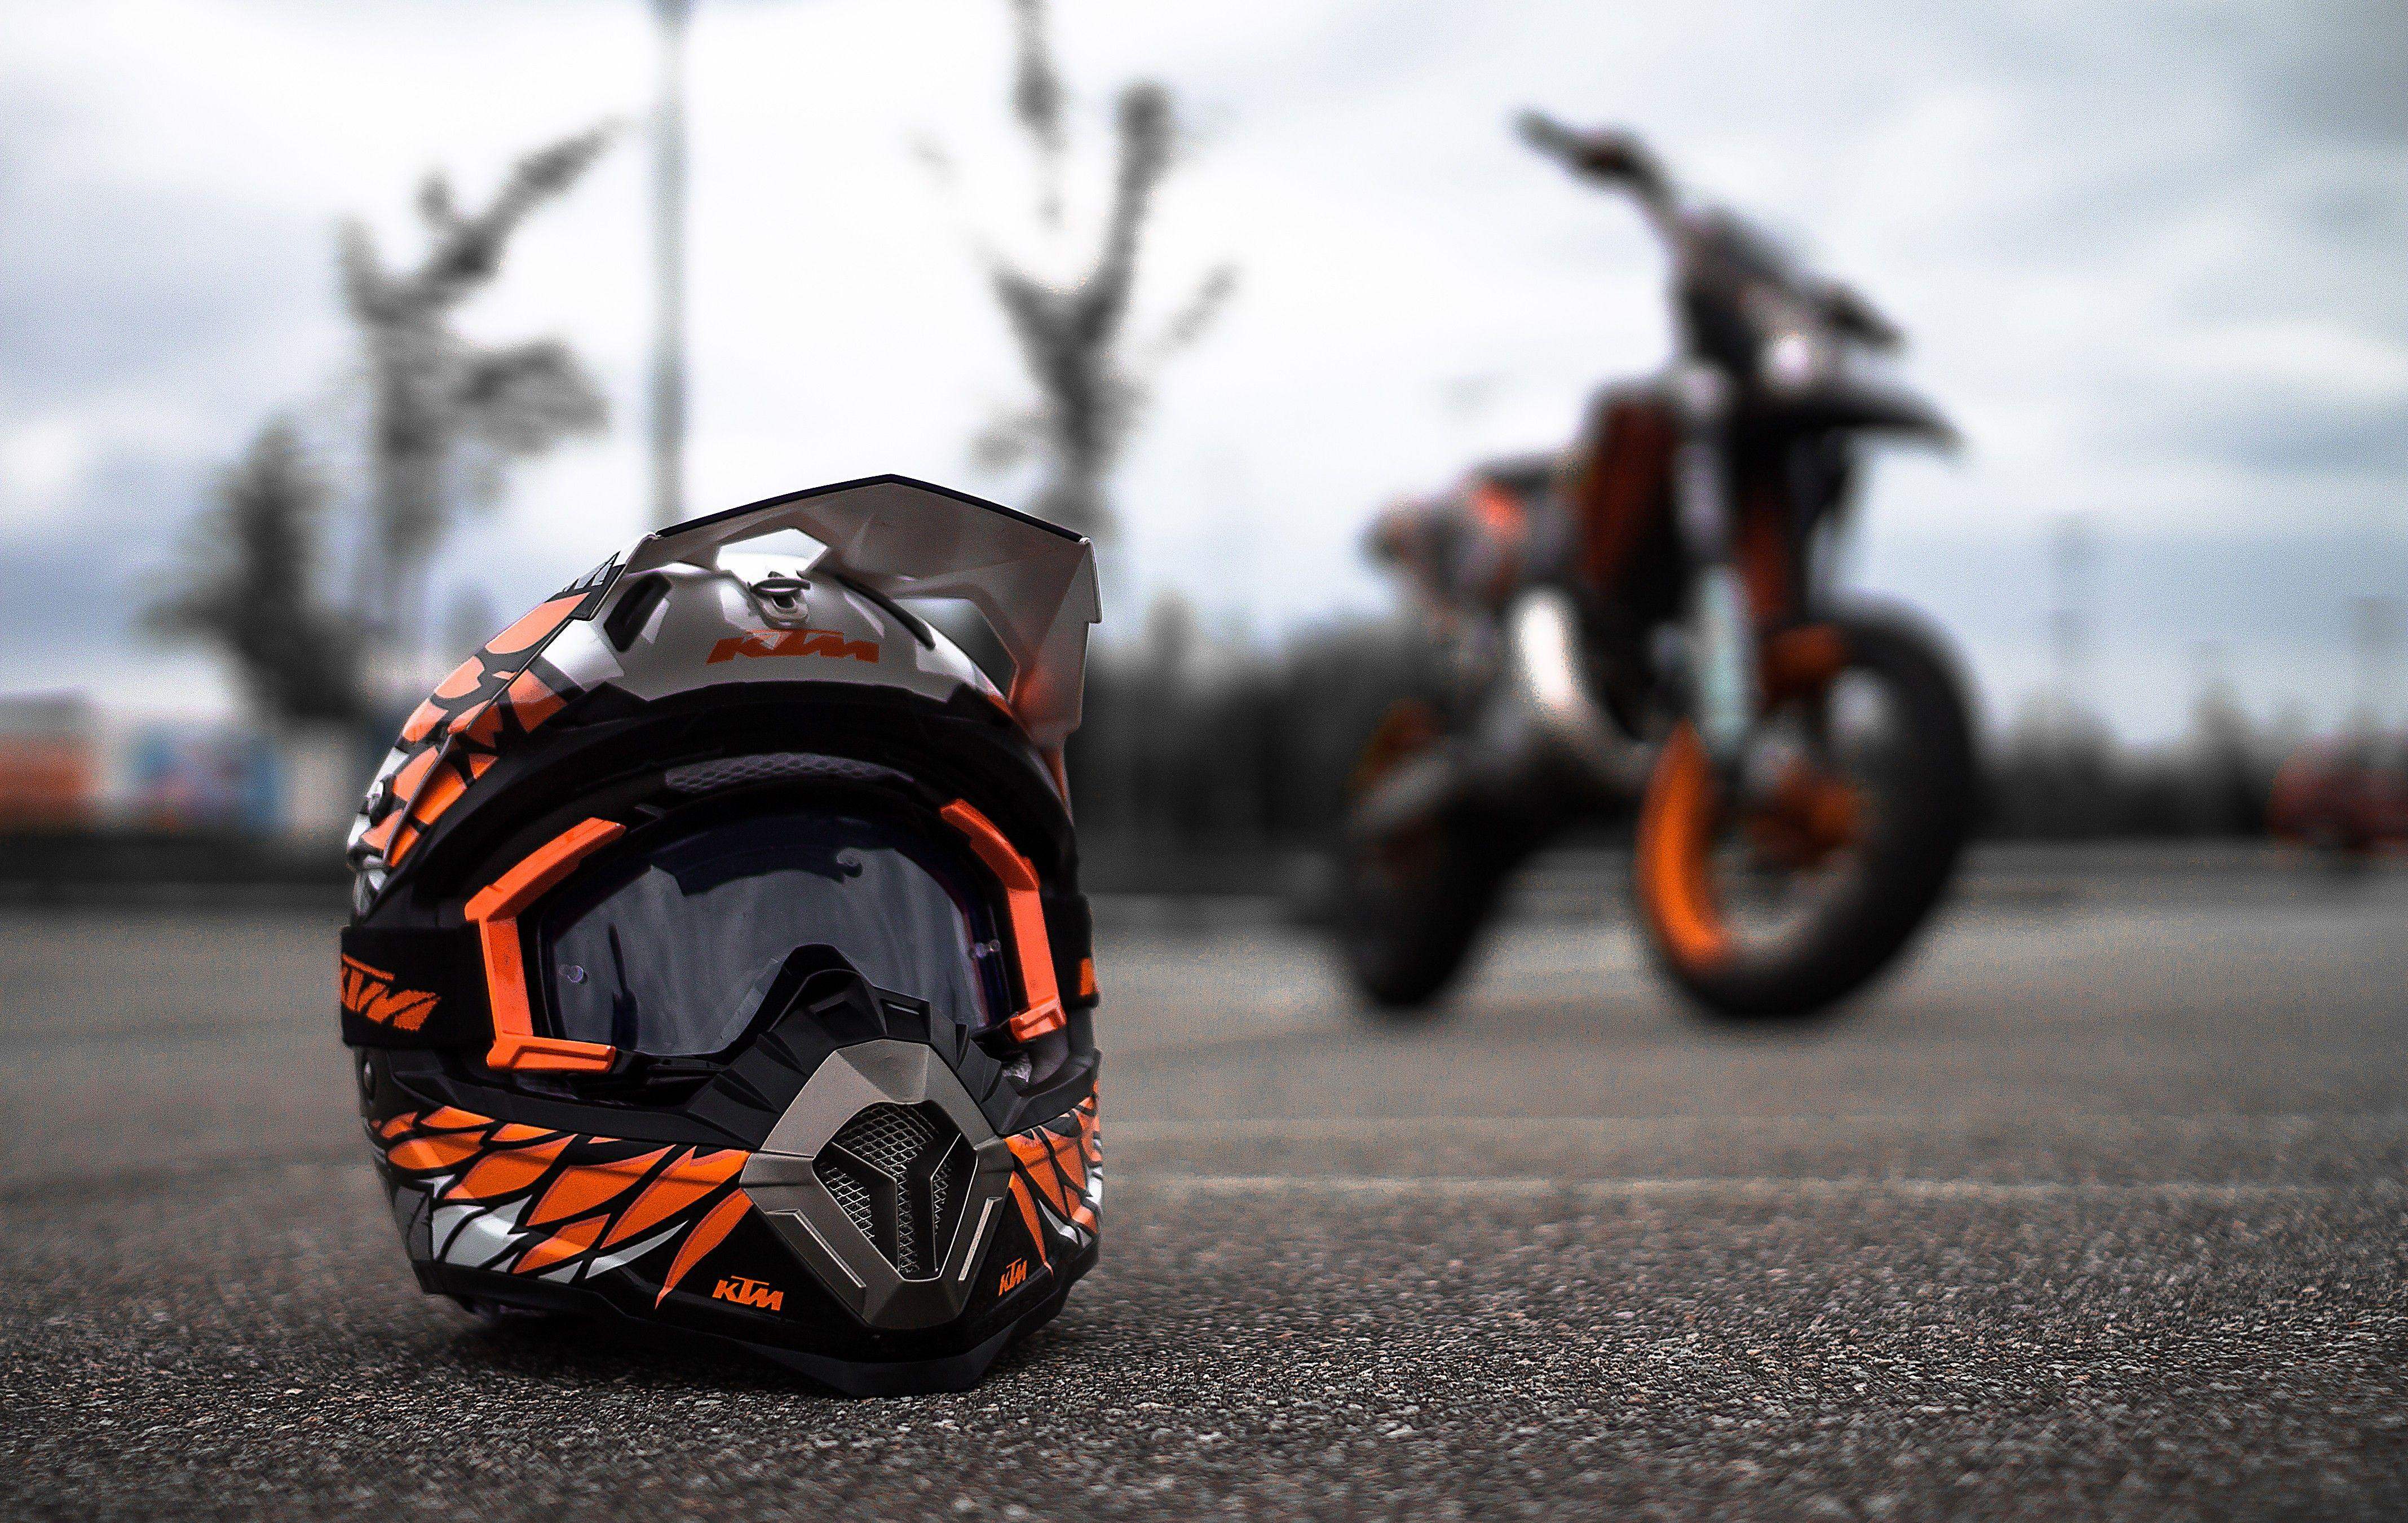 Download KTM Helmet HD Wallpapers In 240x320 Screen Resolution